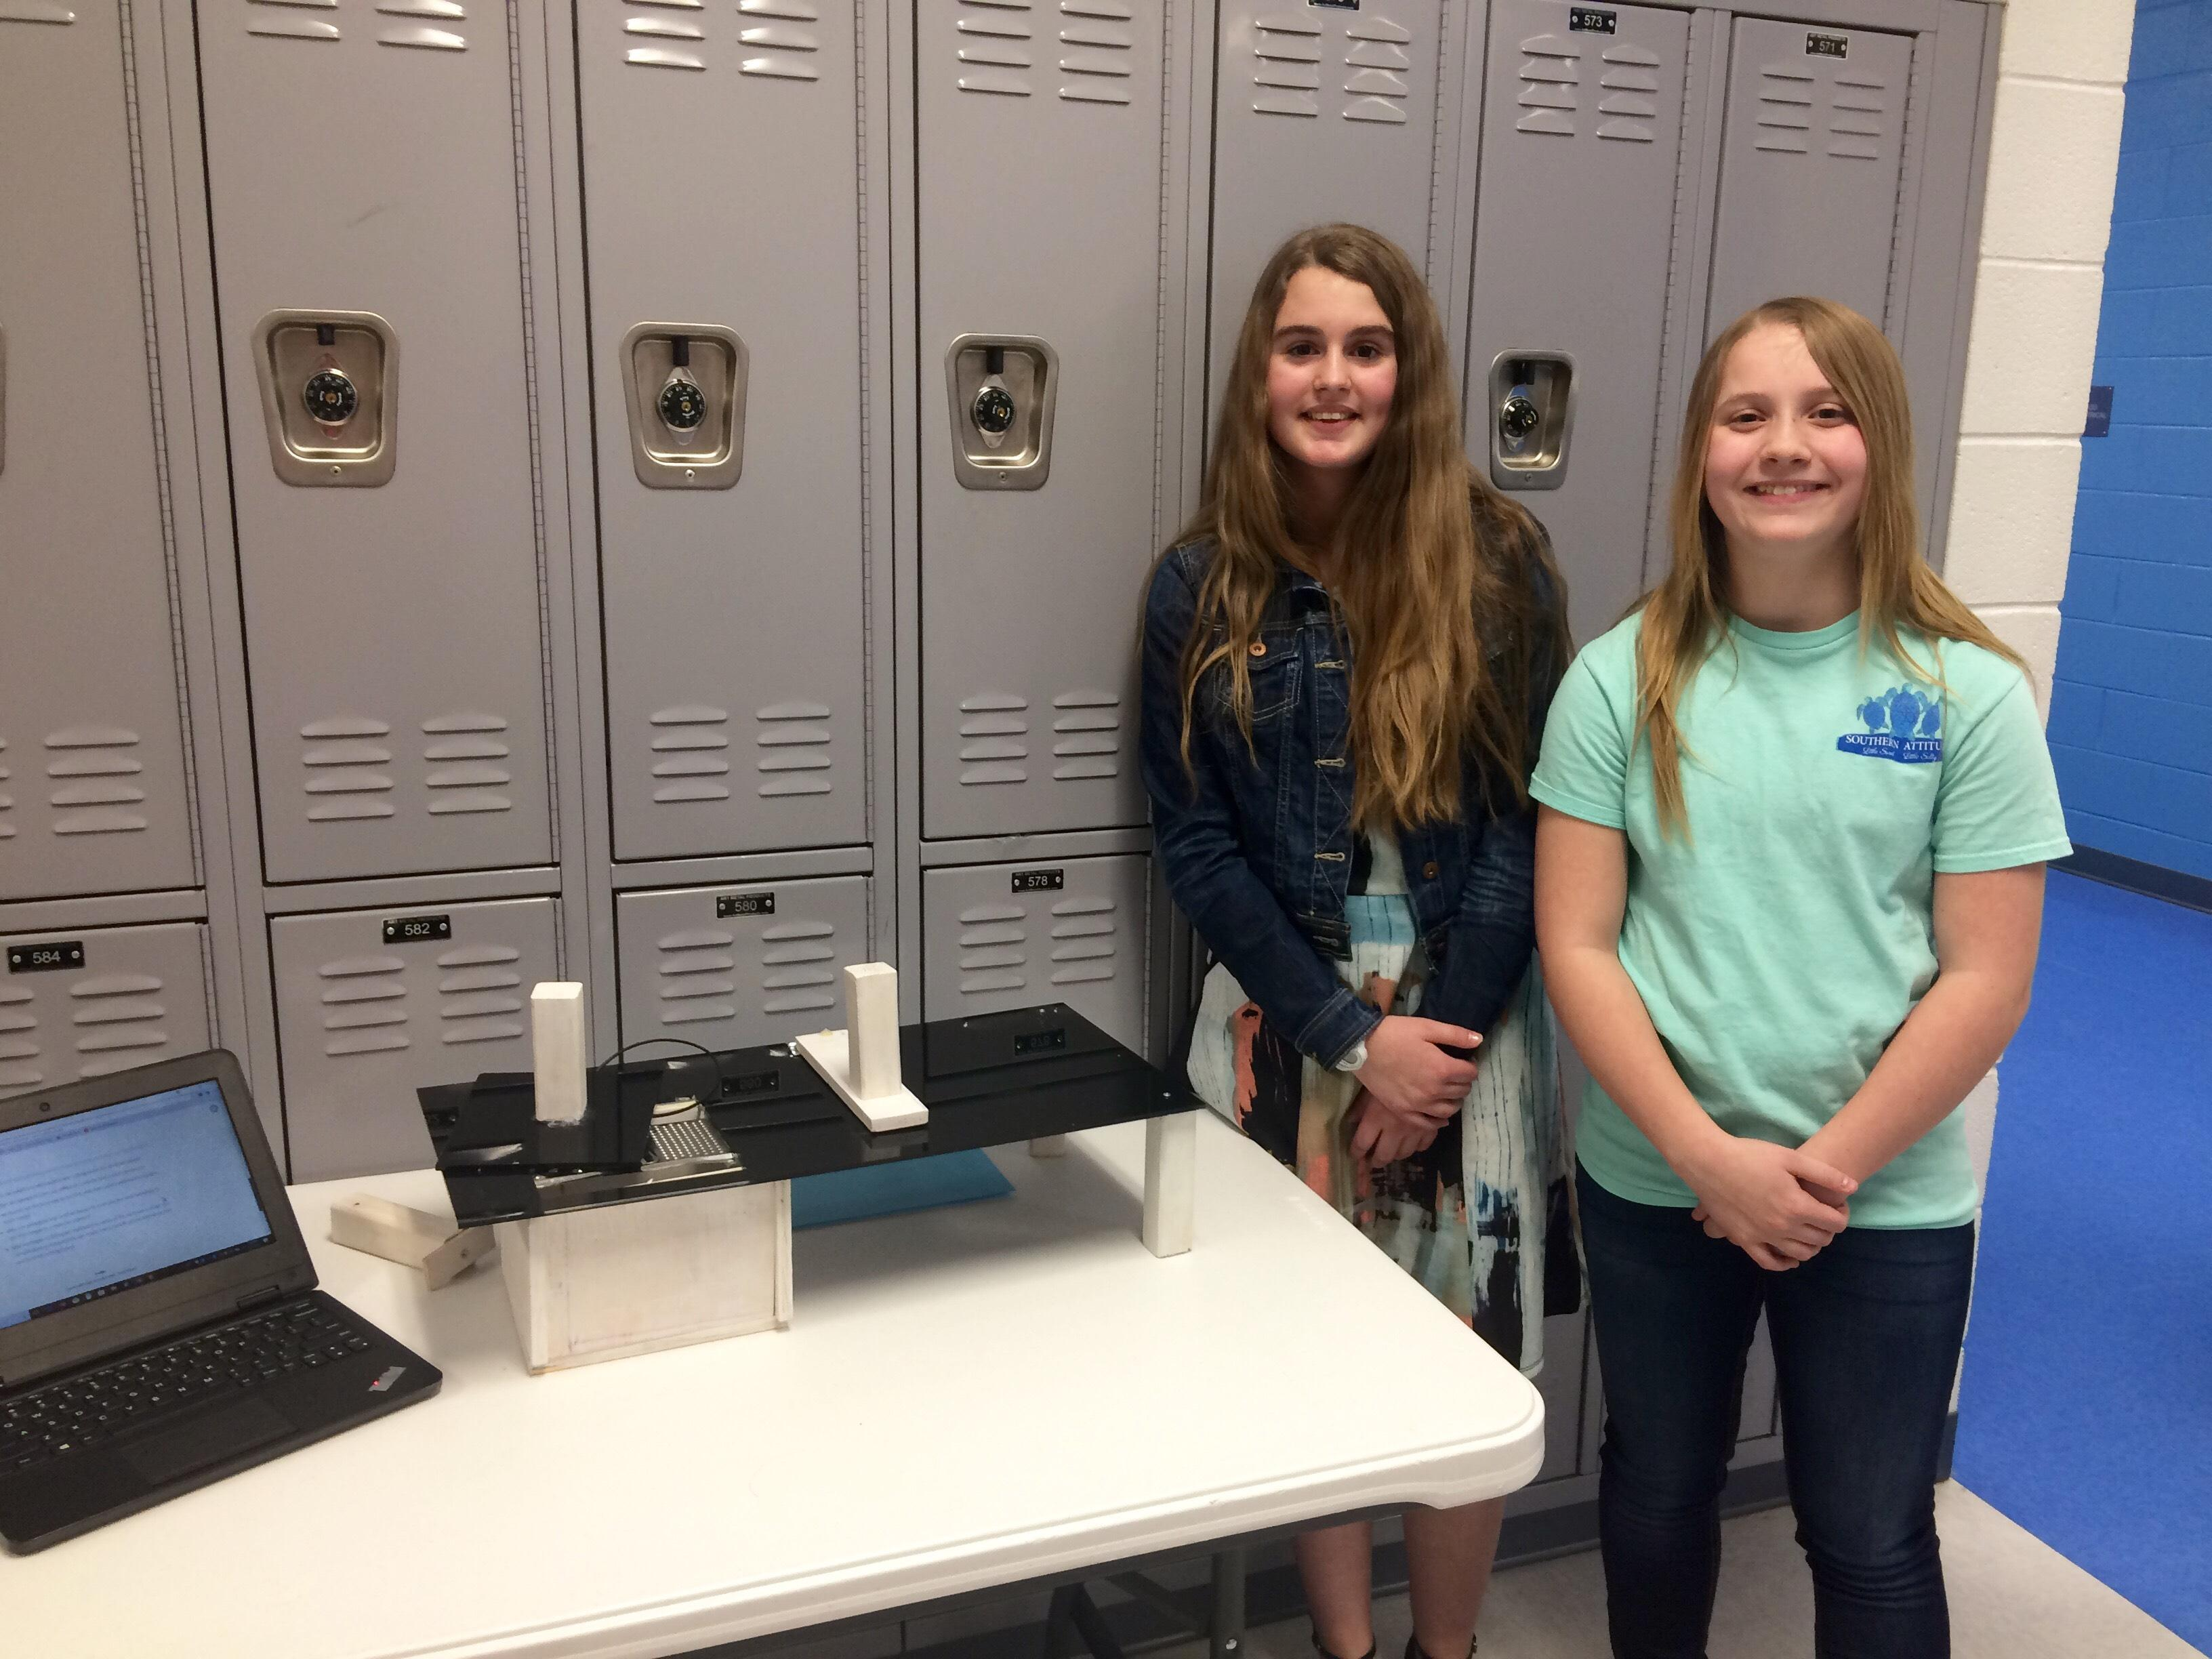 Sale Creek students design projects tailored to the special needs community. (Image: WTVC)